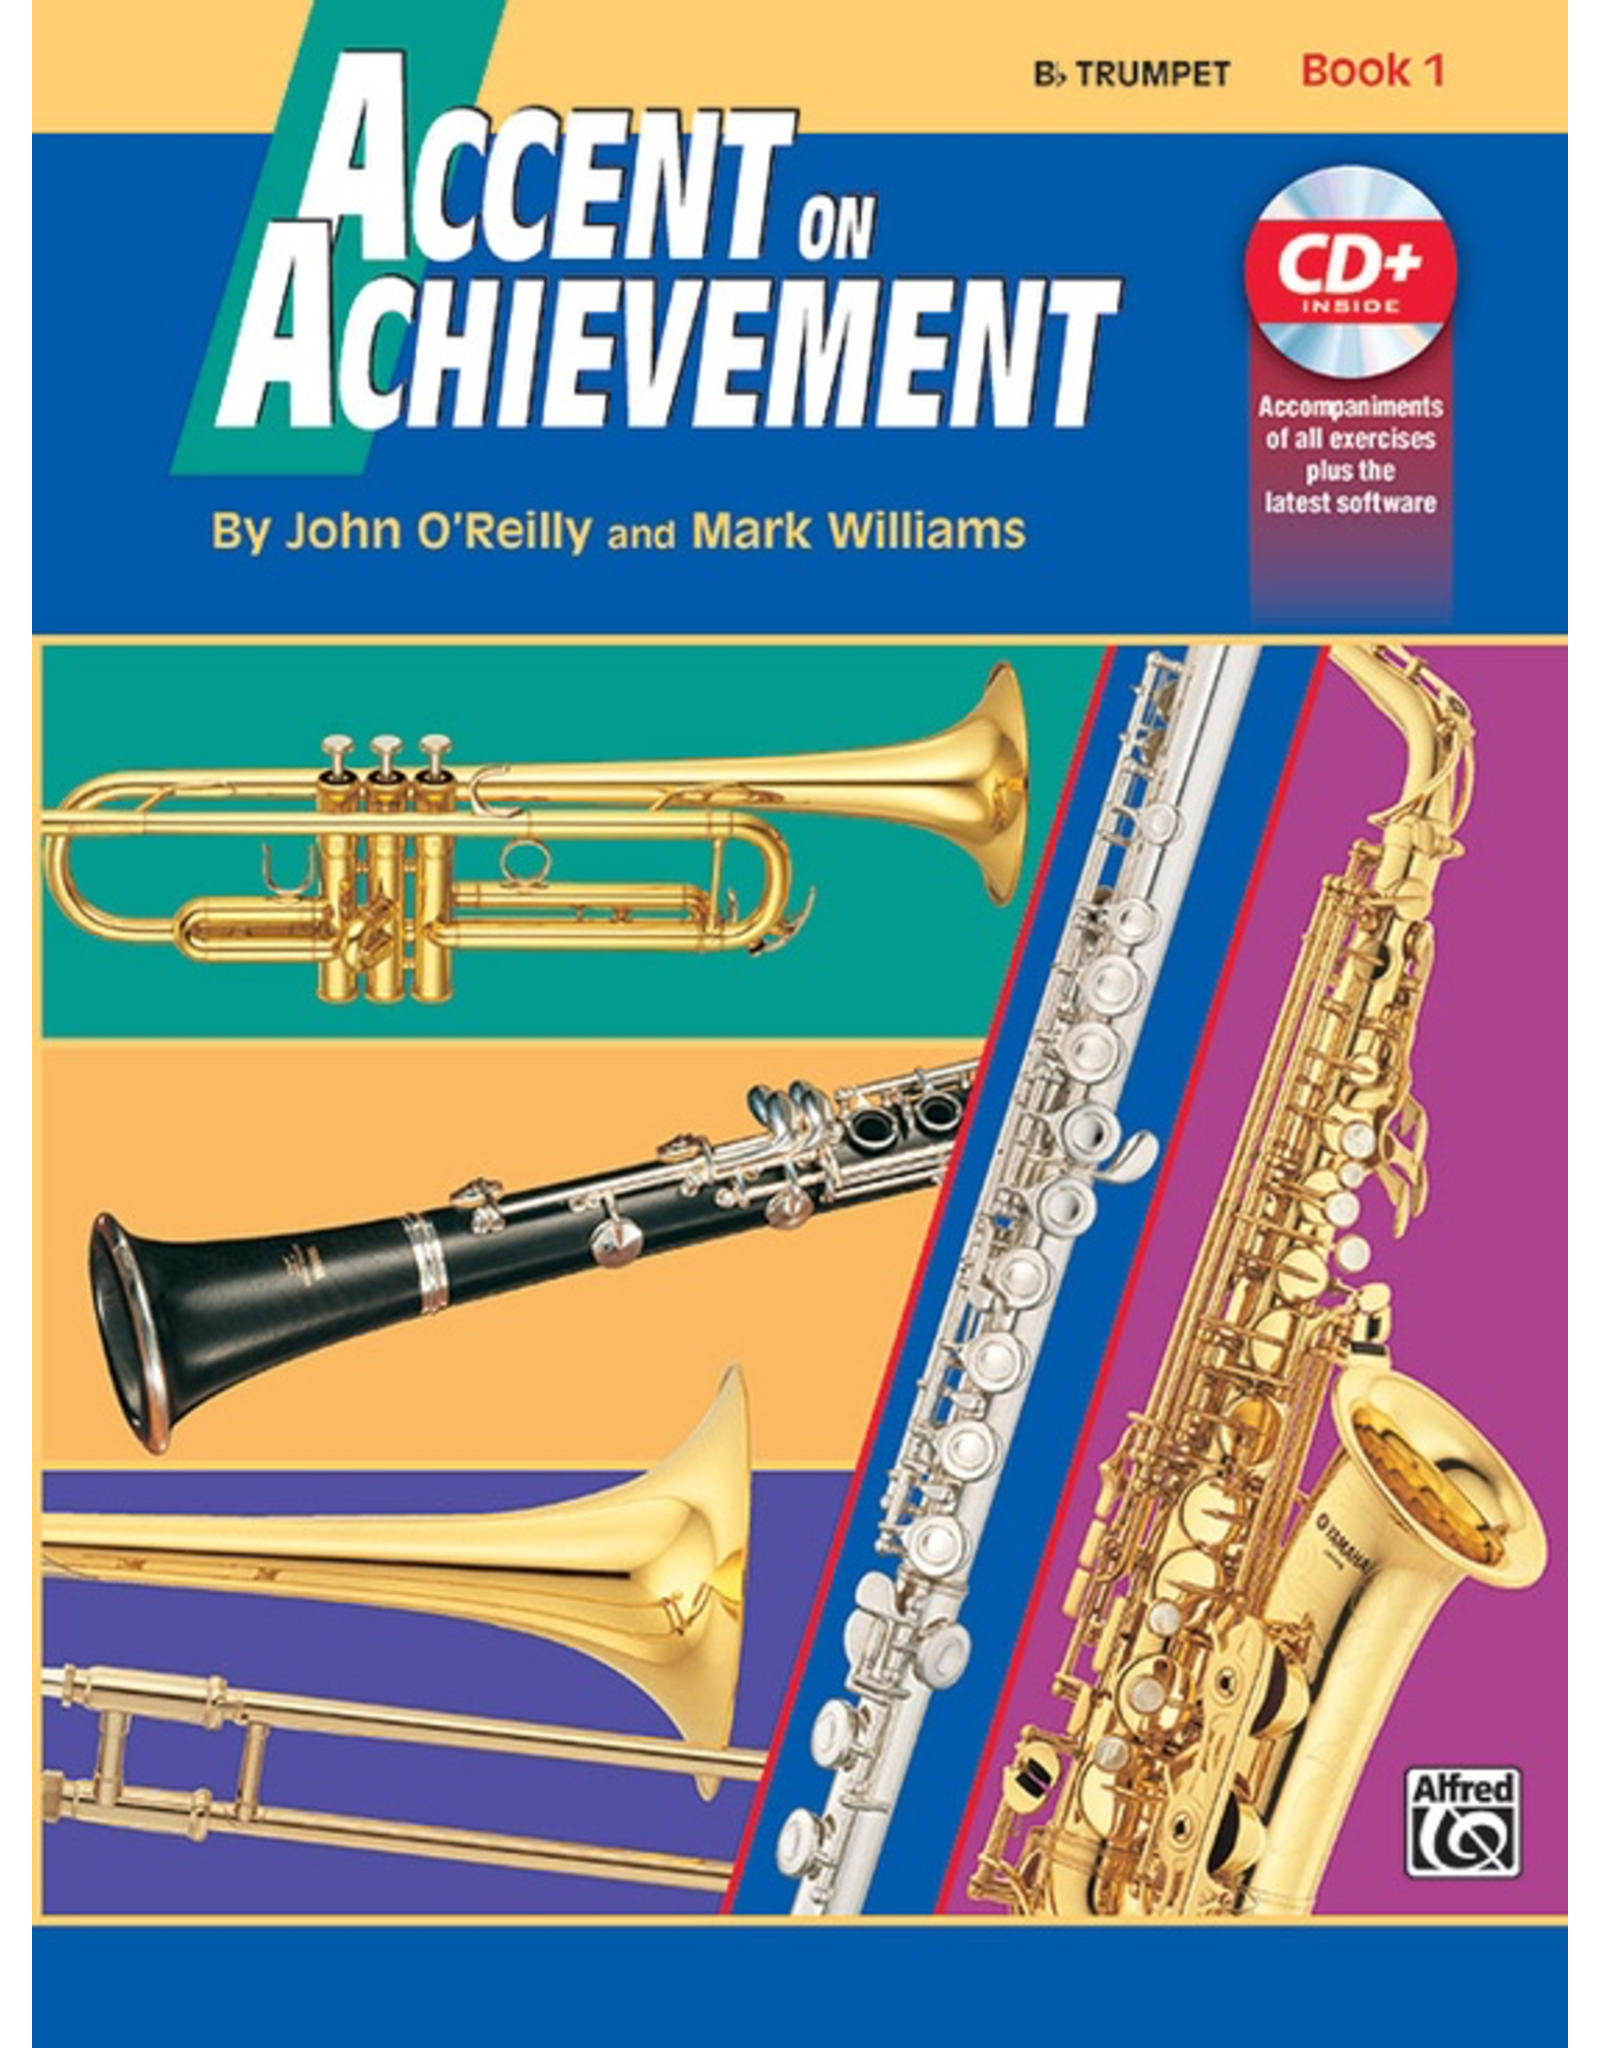 Alfred Accent on Achievement Book 1 with CD, Trumpet